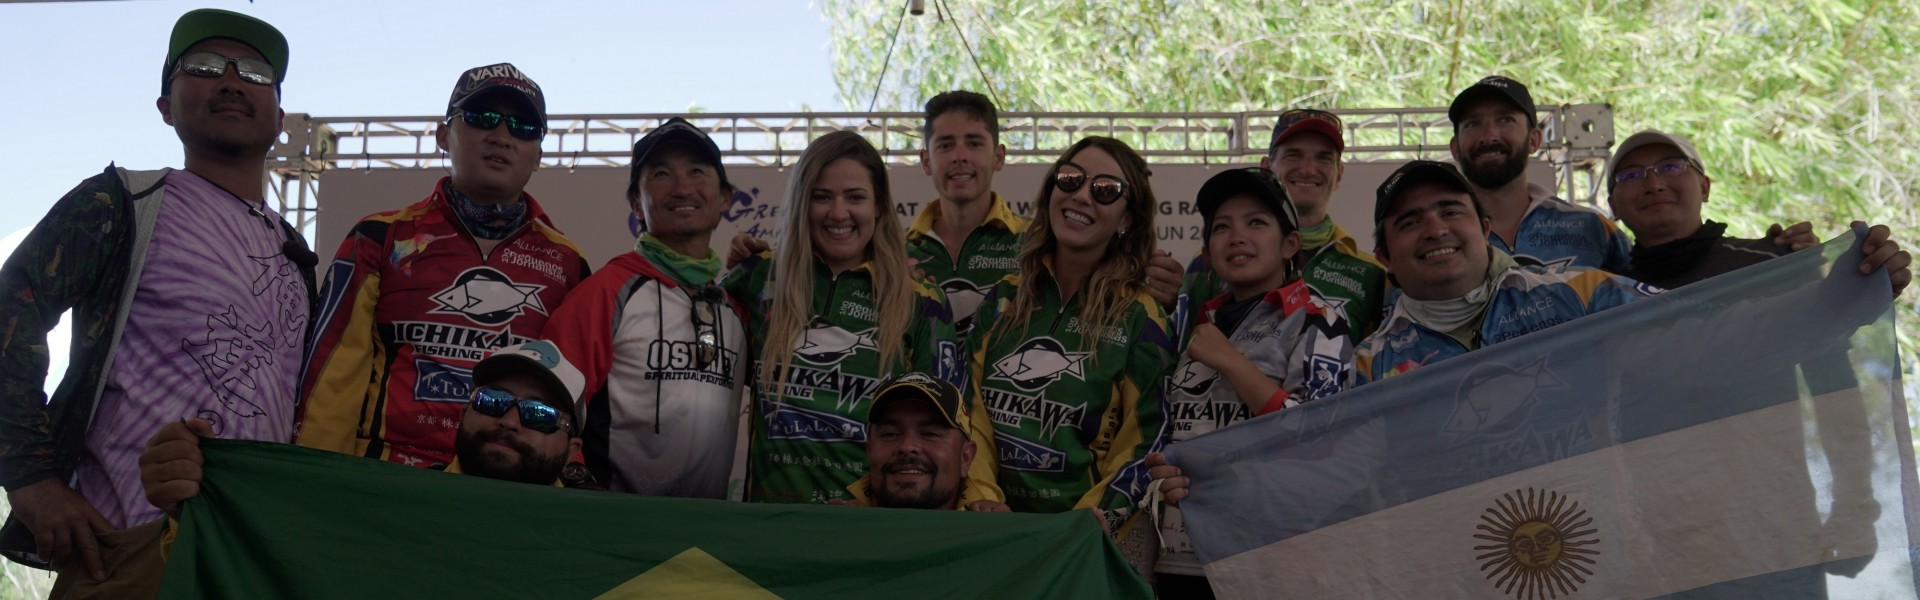 Competidores que participaram do World Fishing Rally